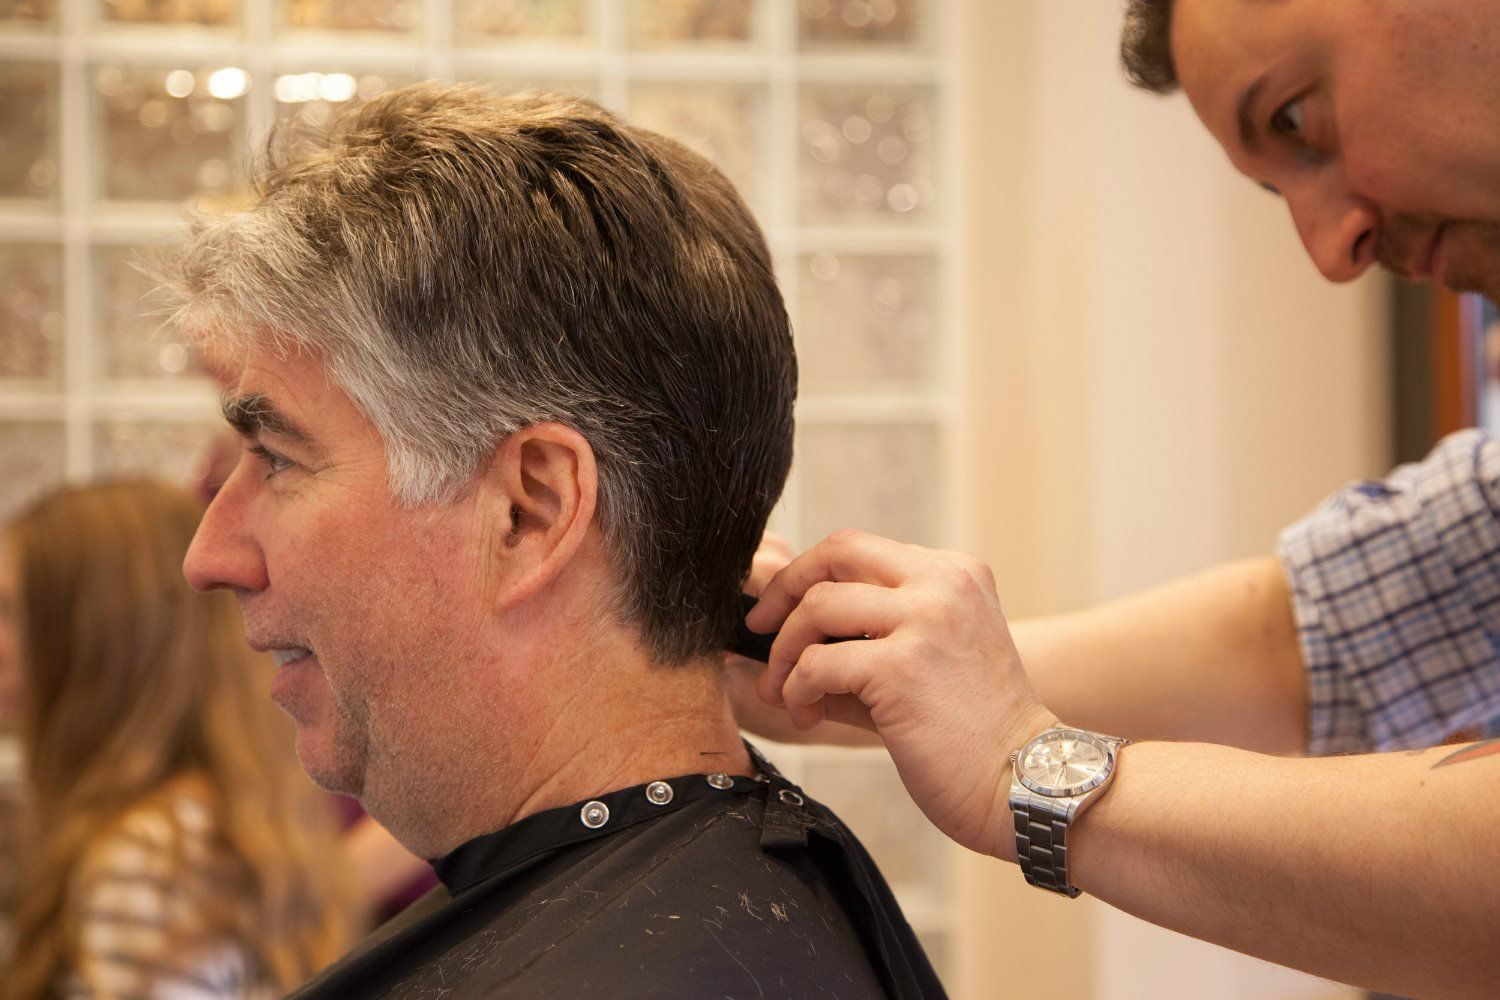 Hair Services And Rates Austin Rolfe Salon